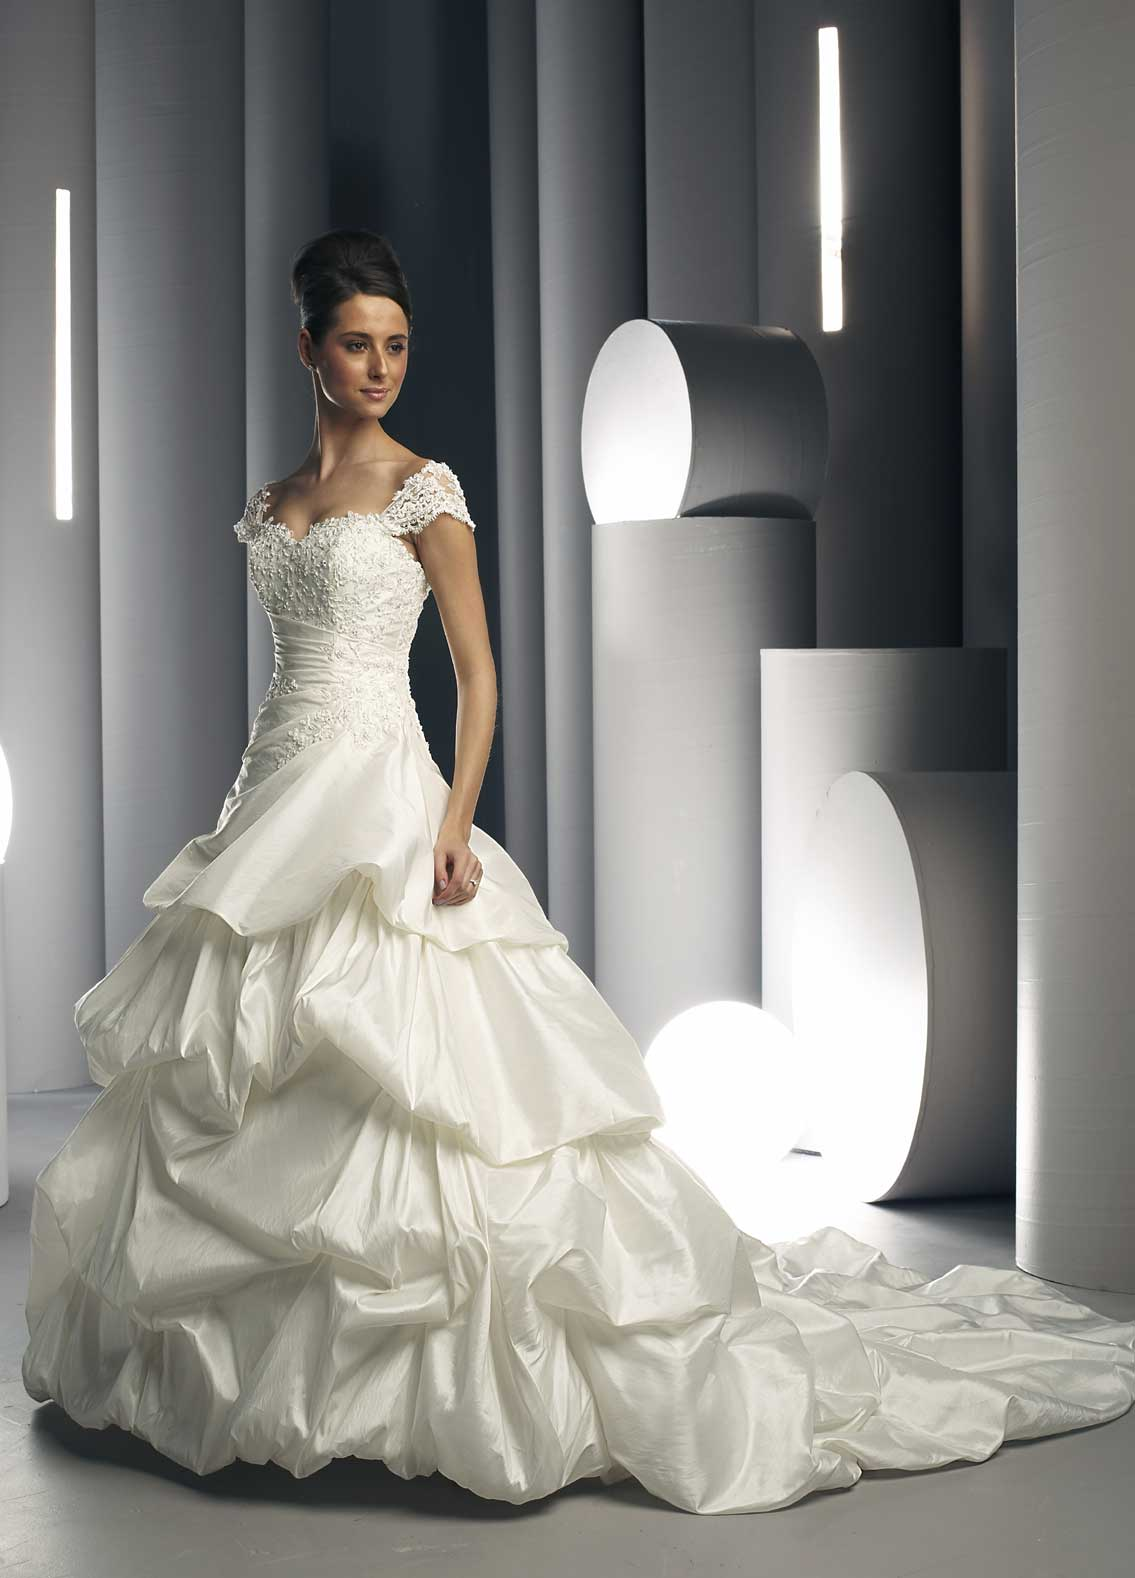 The Dream Wedding Inspirations: White Bridal Gowns